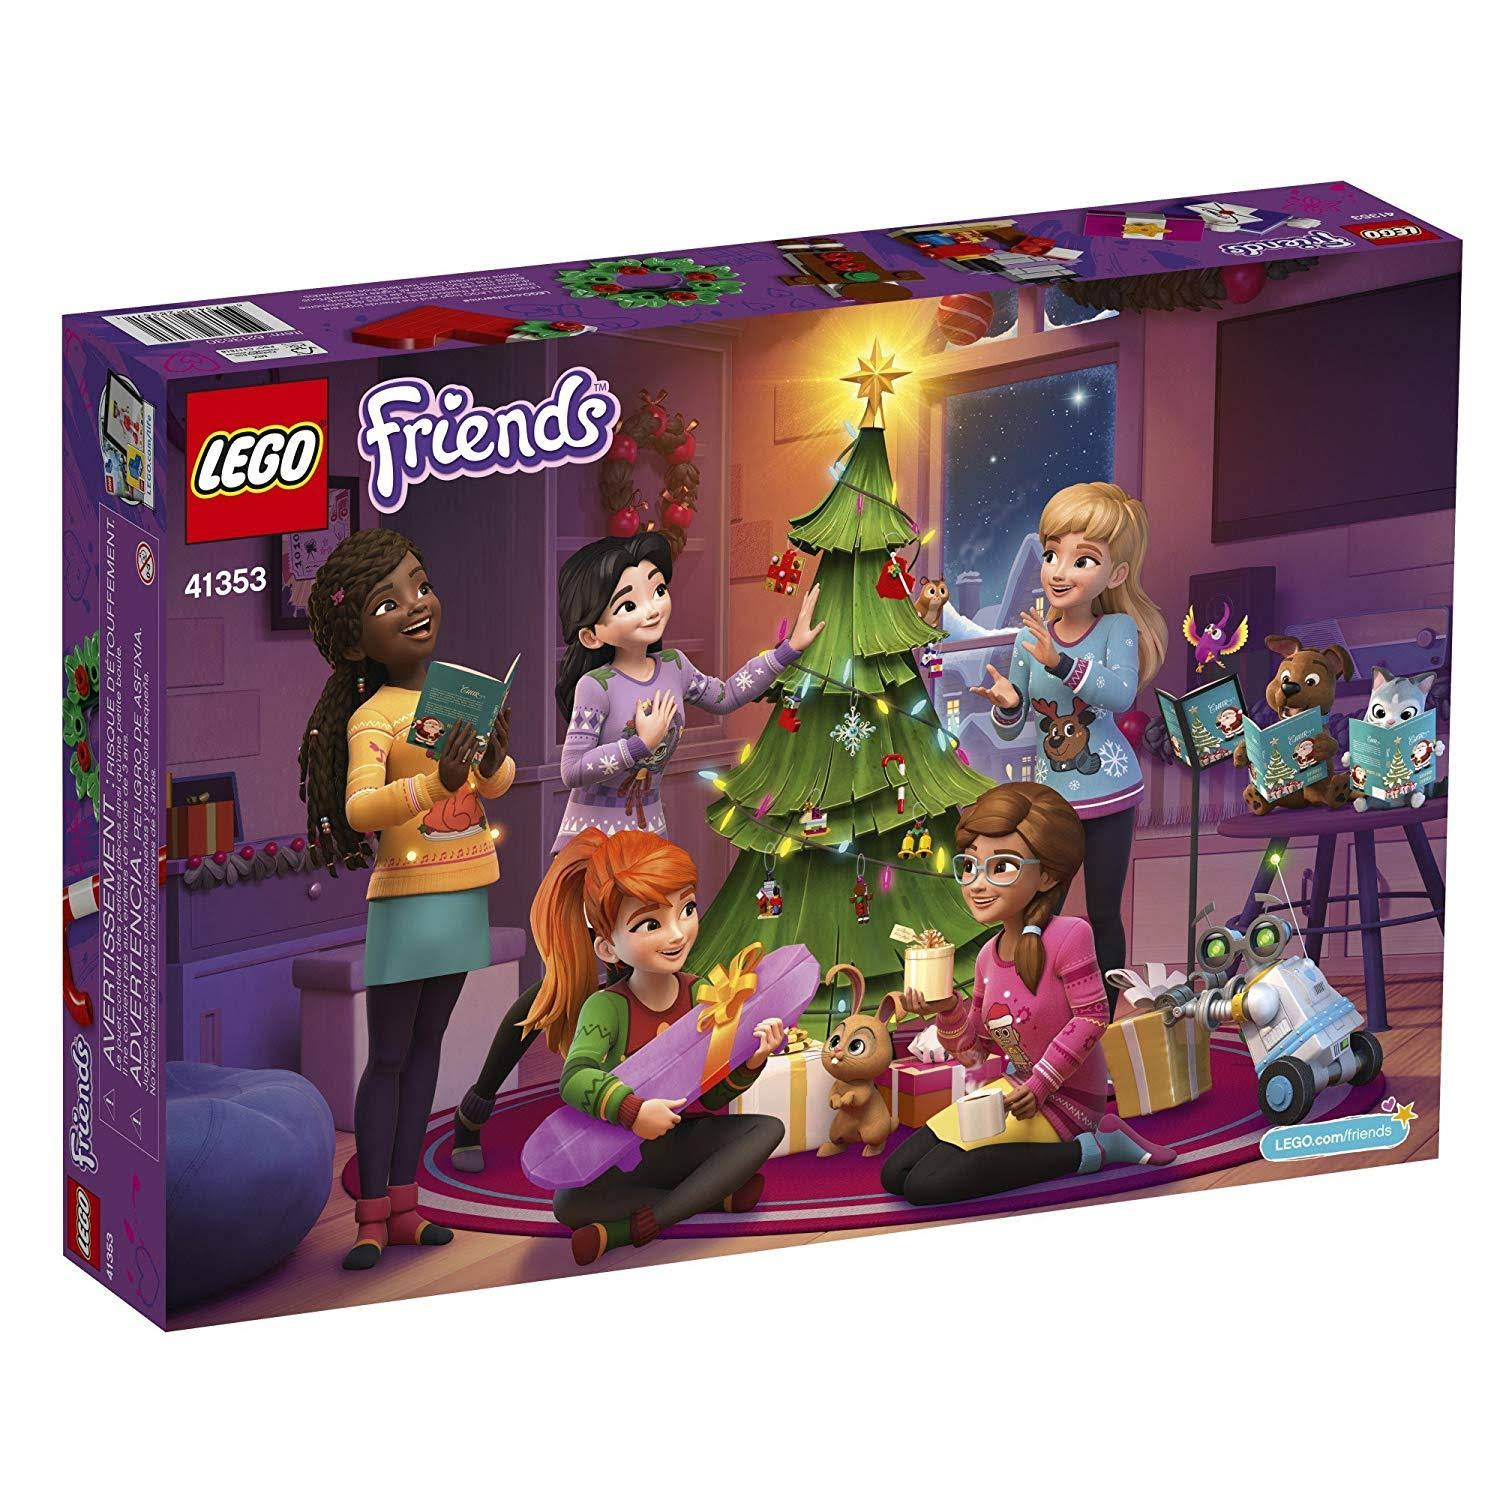 Lego Friends Advent Calendar Building Toy - 500pcs